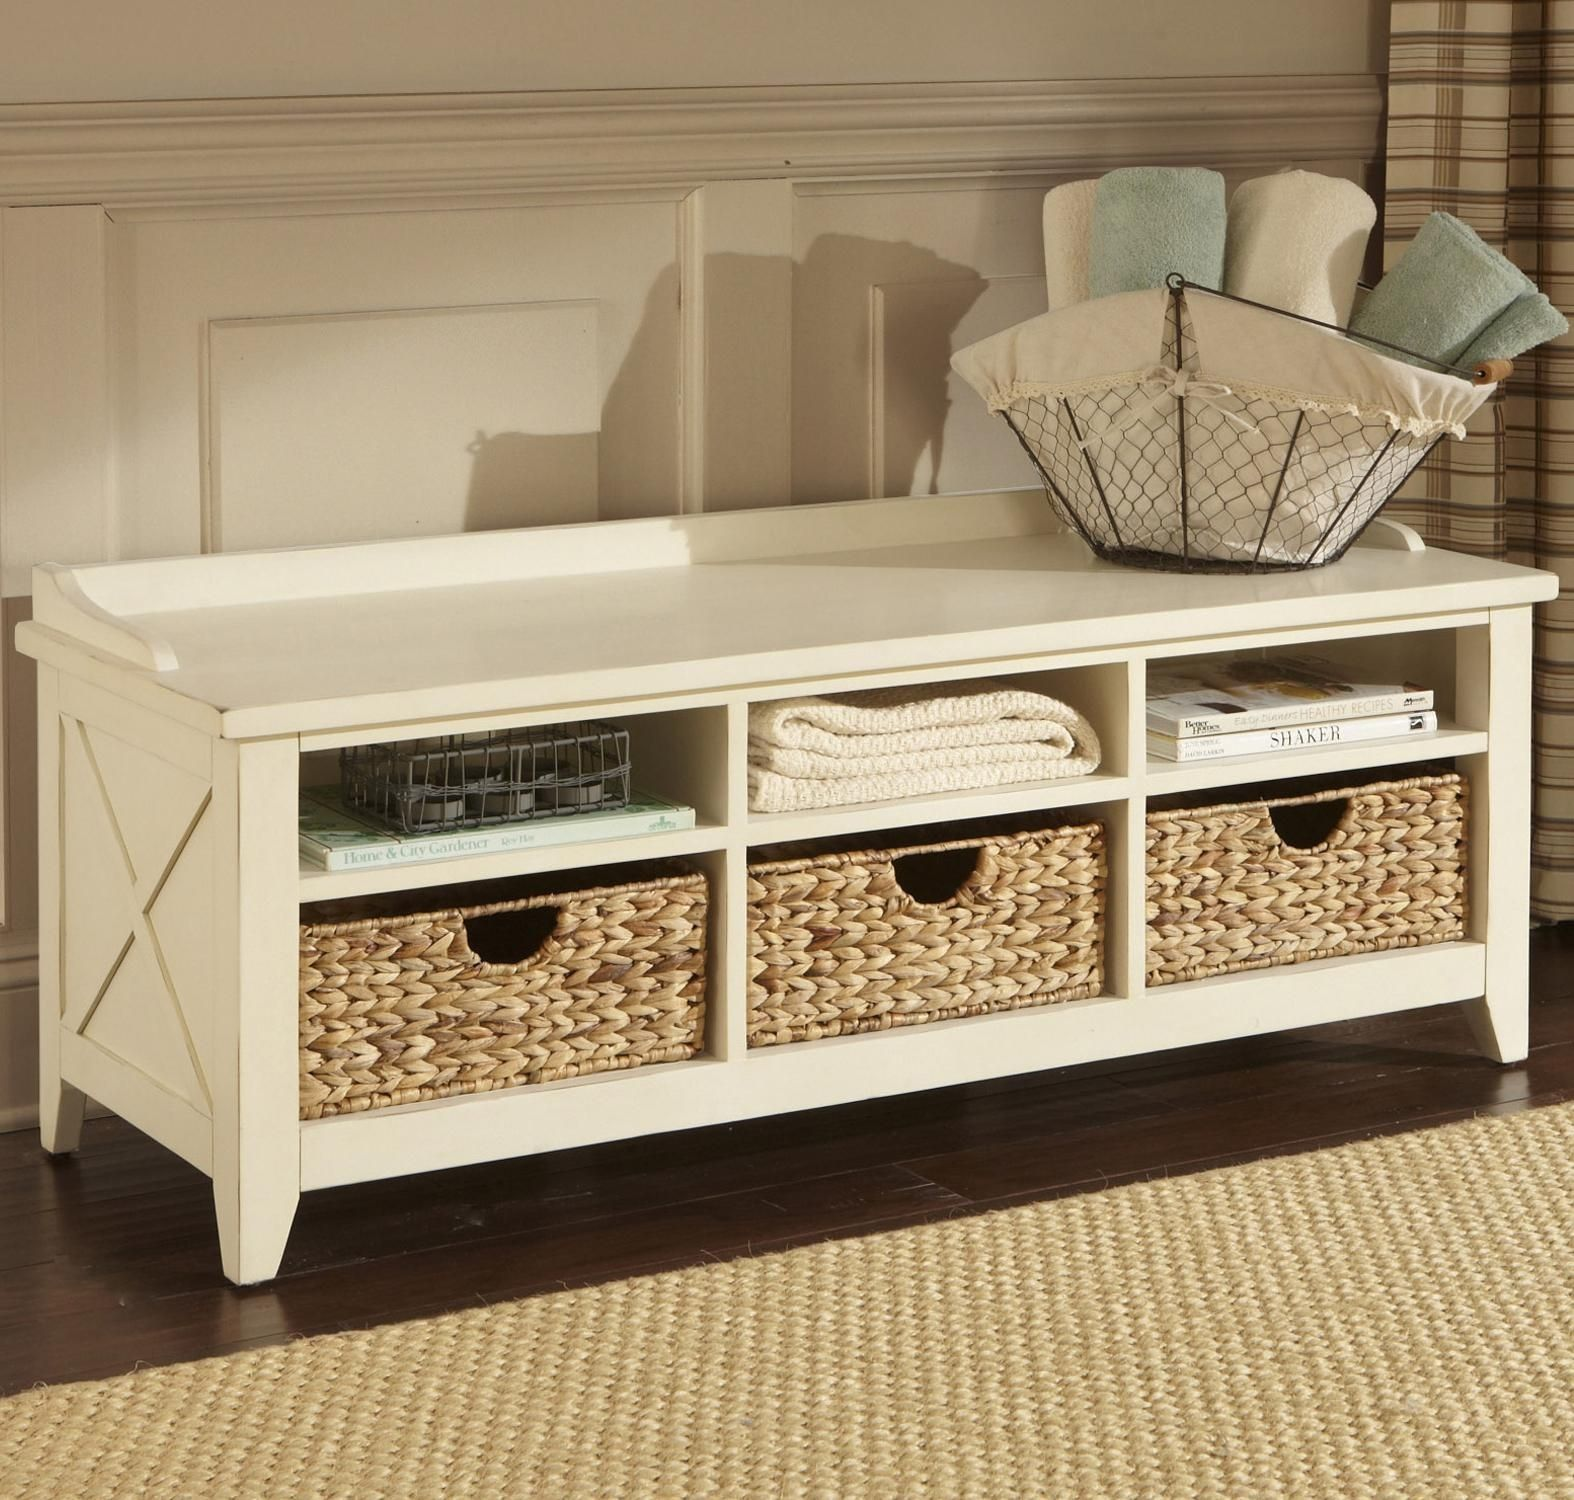 Image of: Build A Bench With Storage Baskets Home Decorations Inside ...